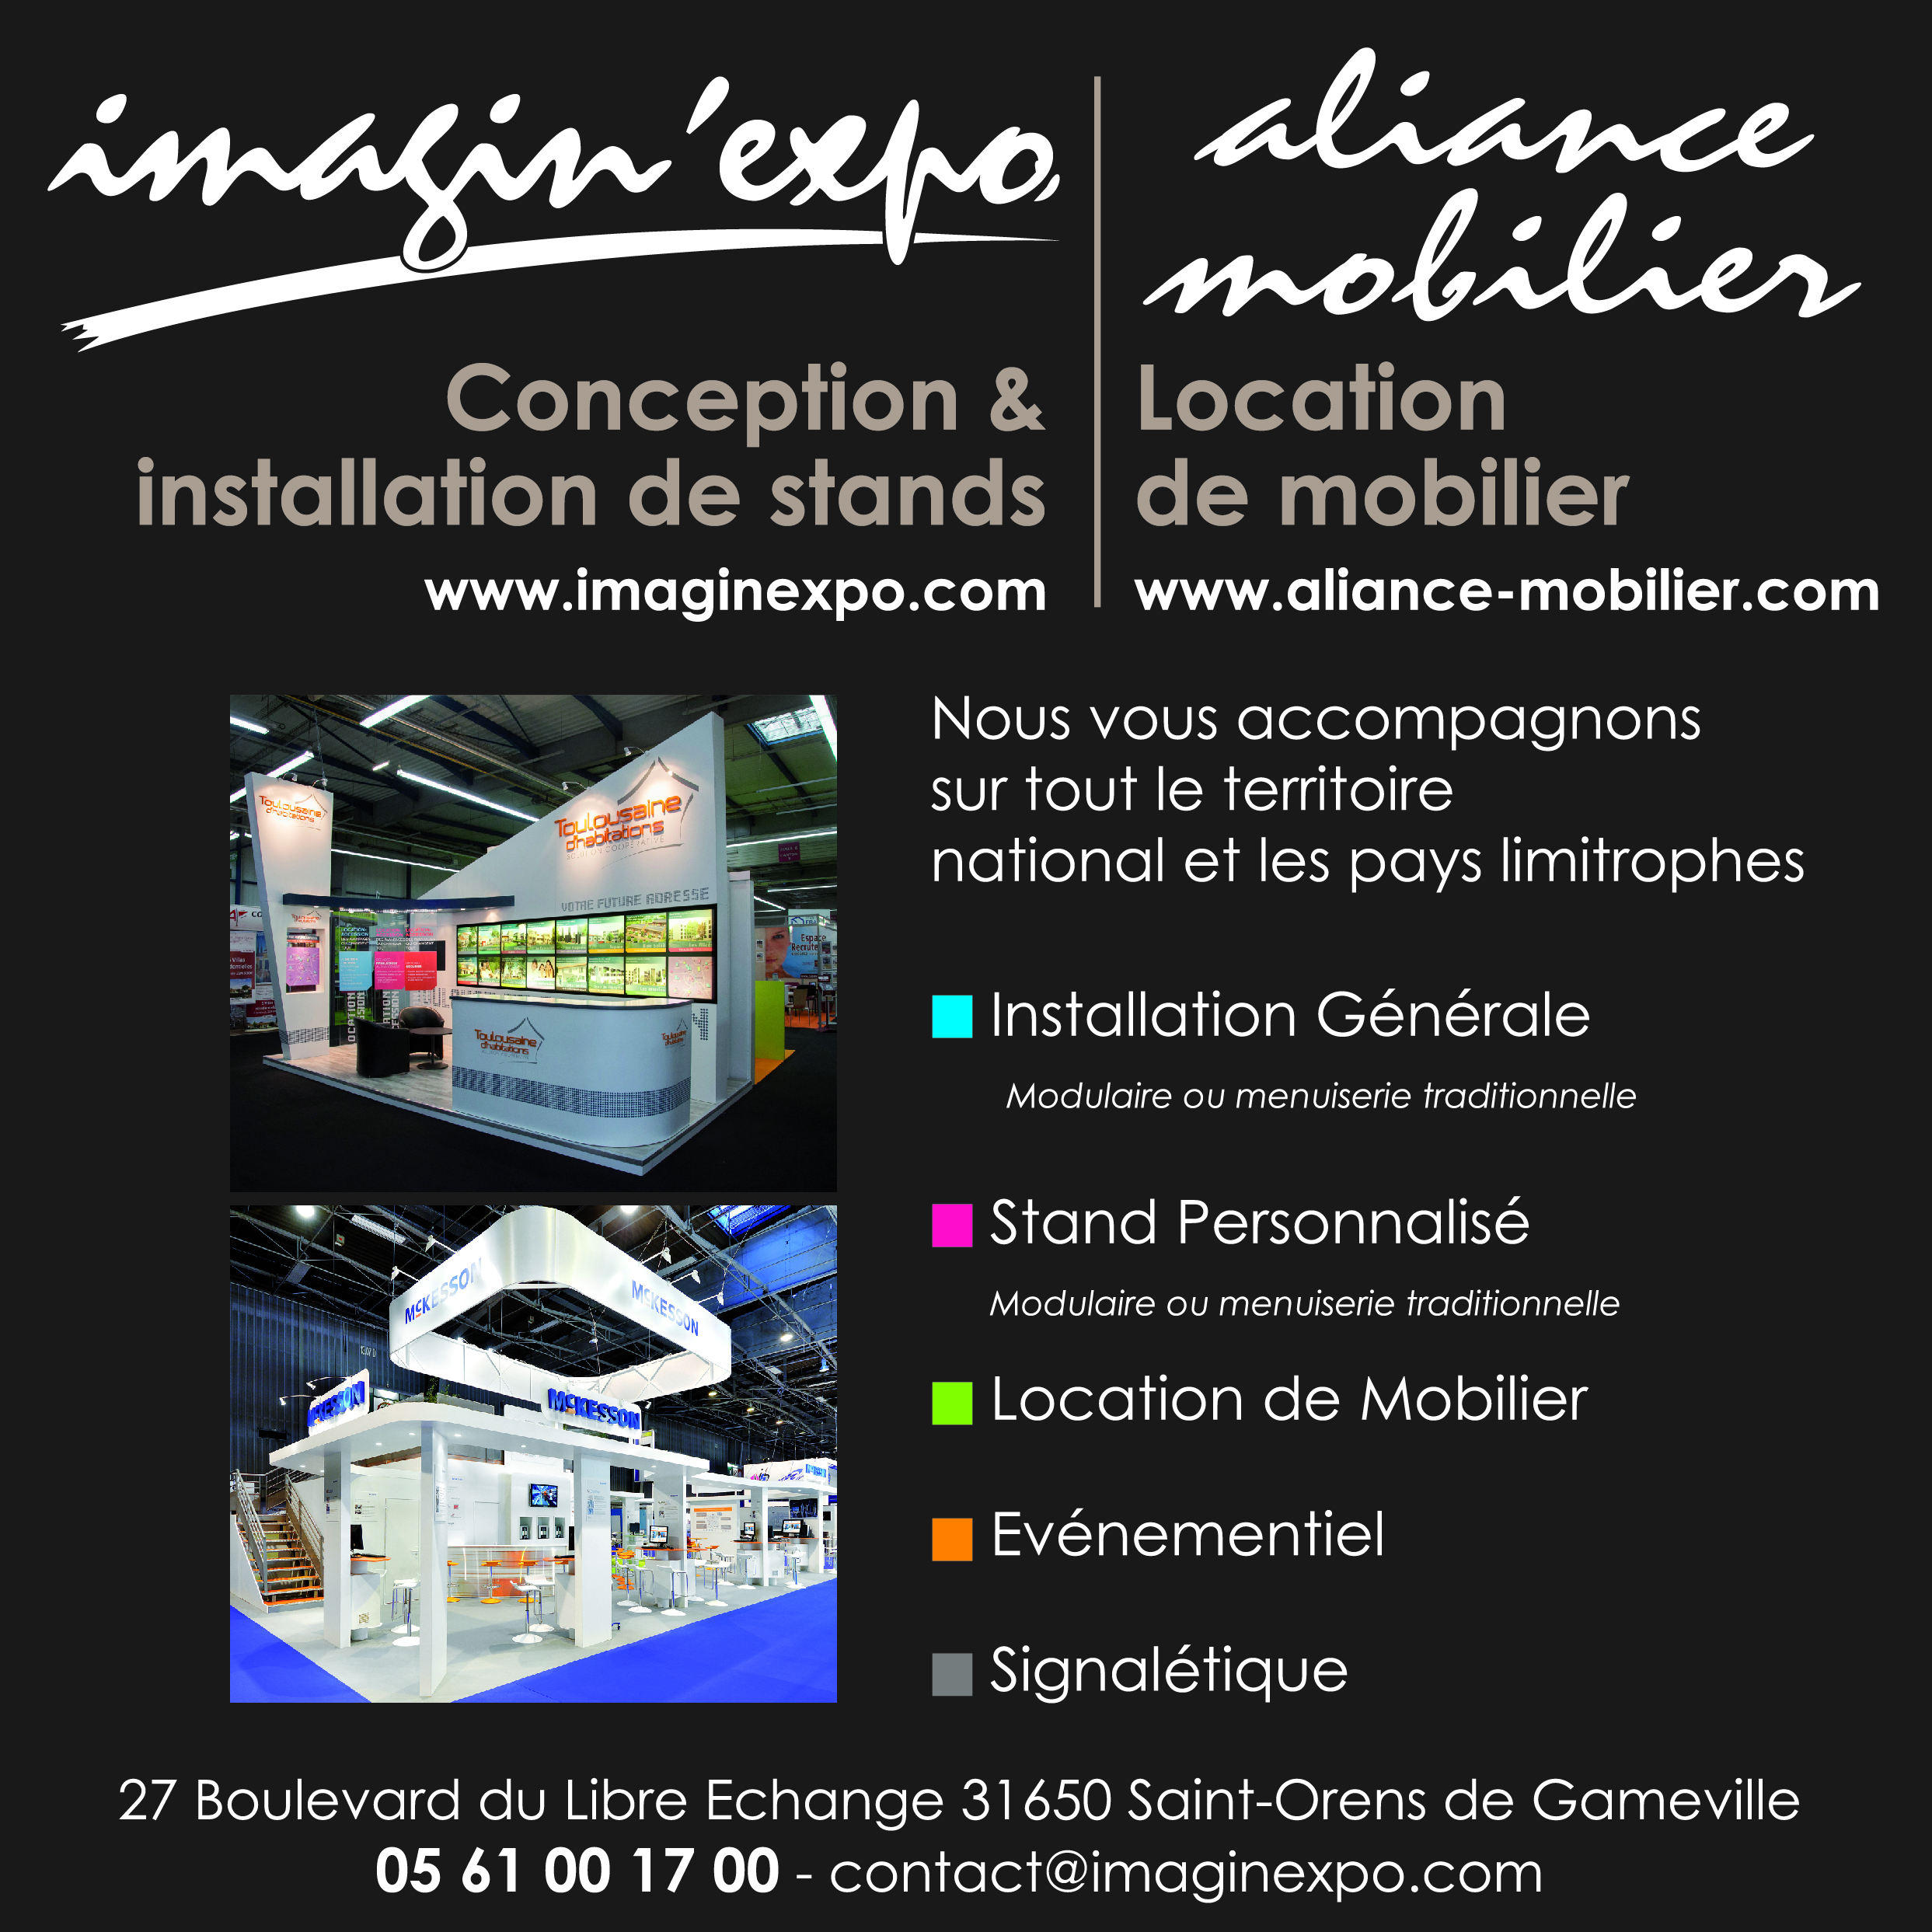 Imagin-Expo-Alliance-Mobilier-Univers-events.com